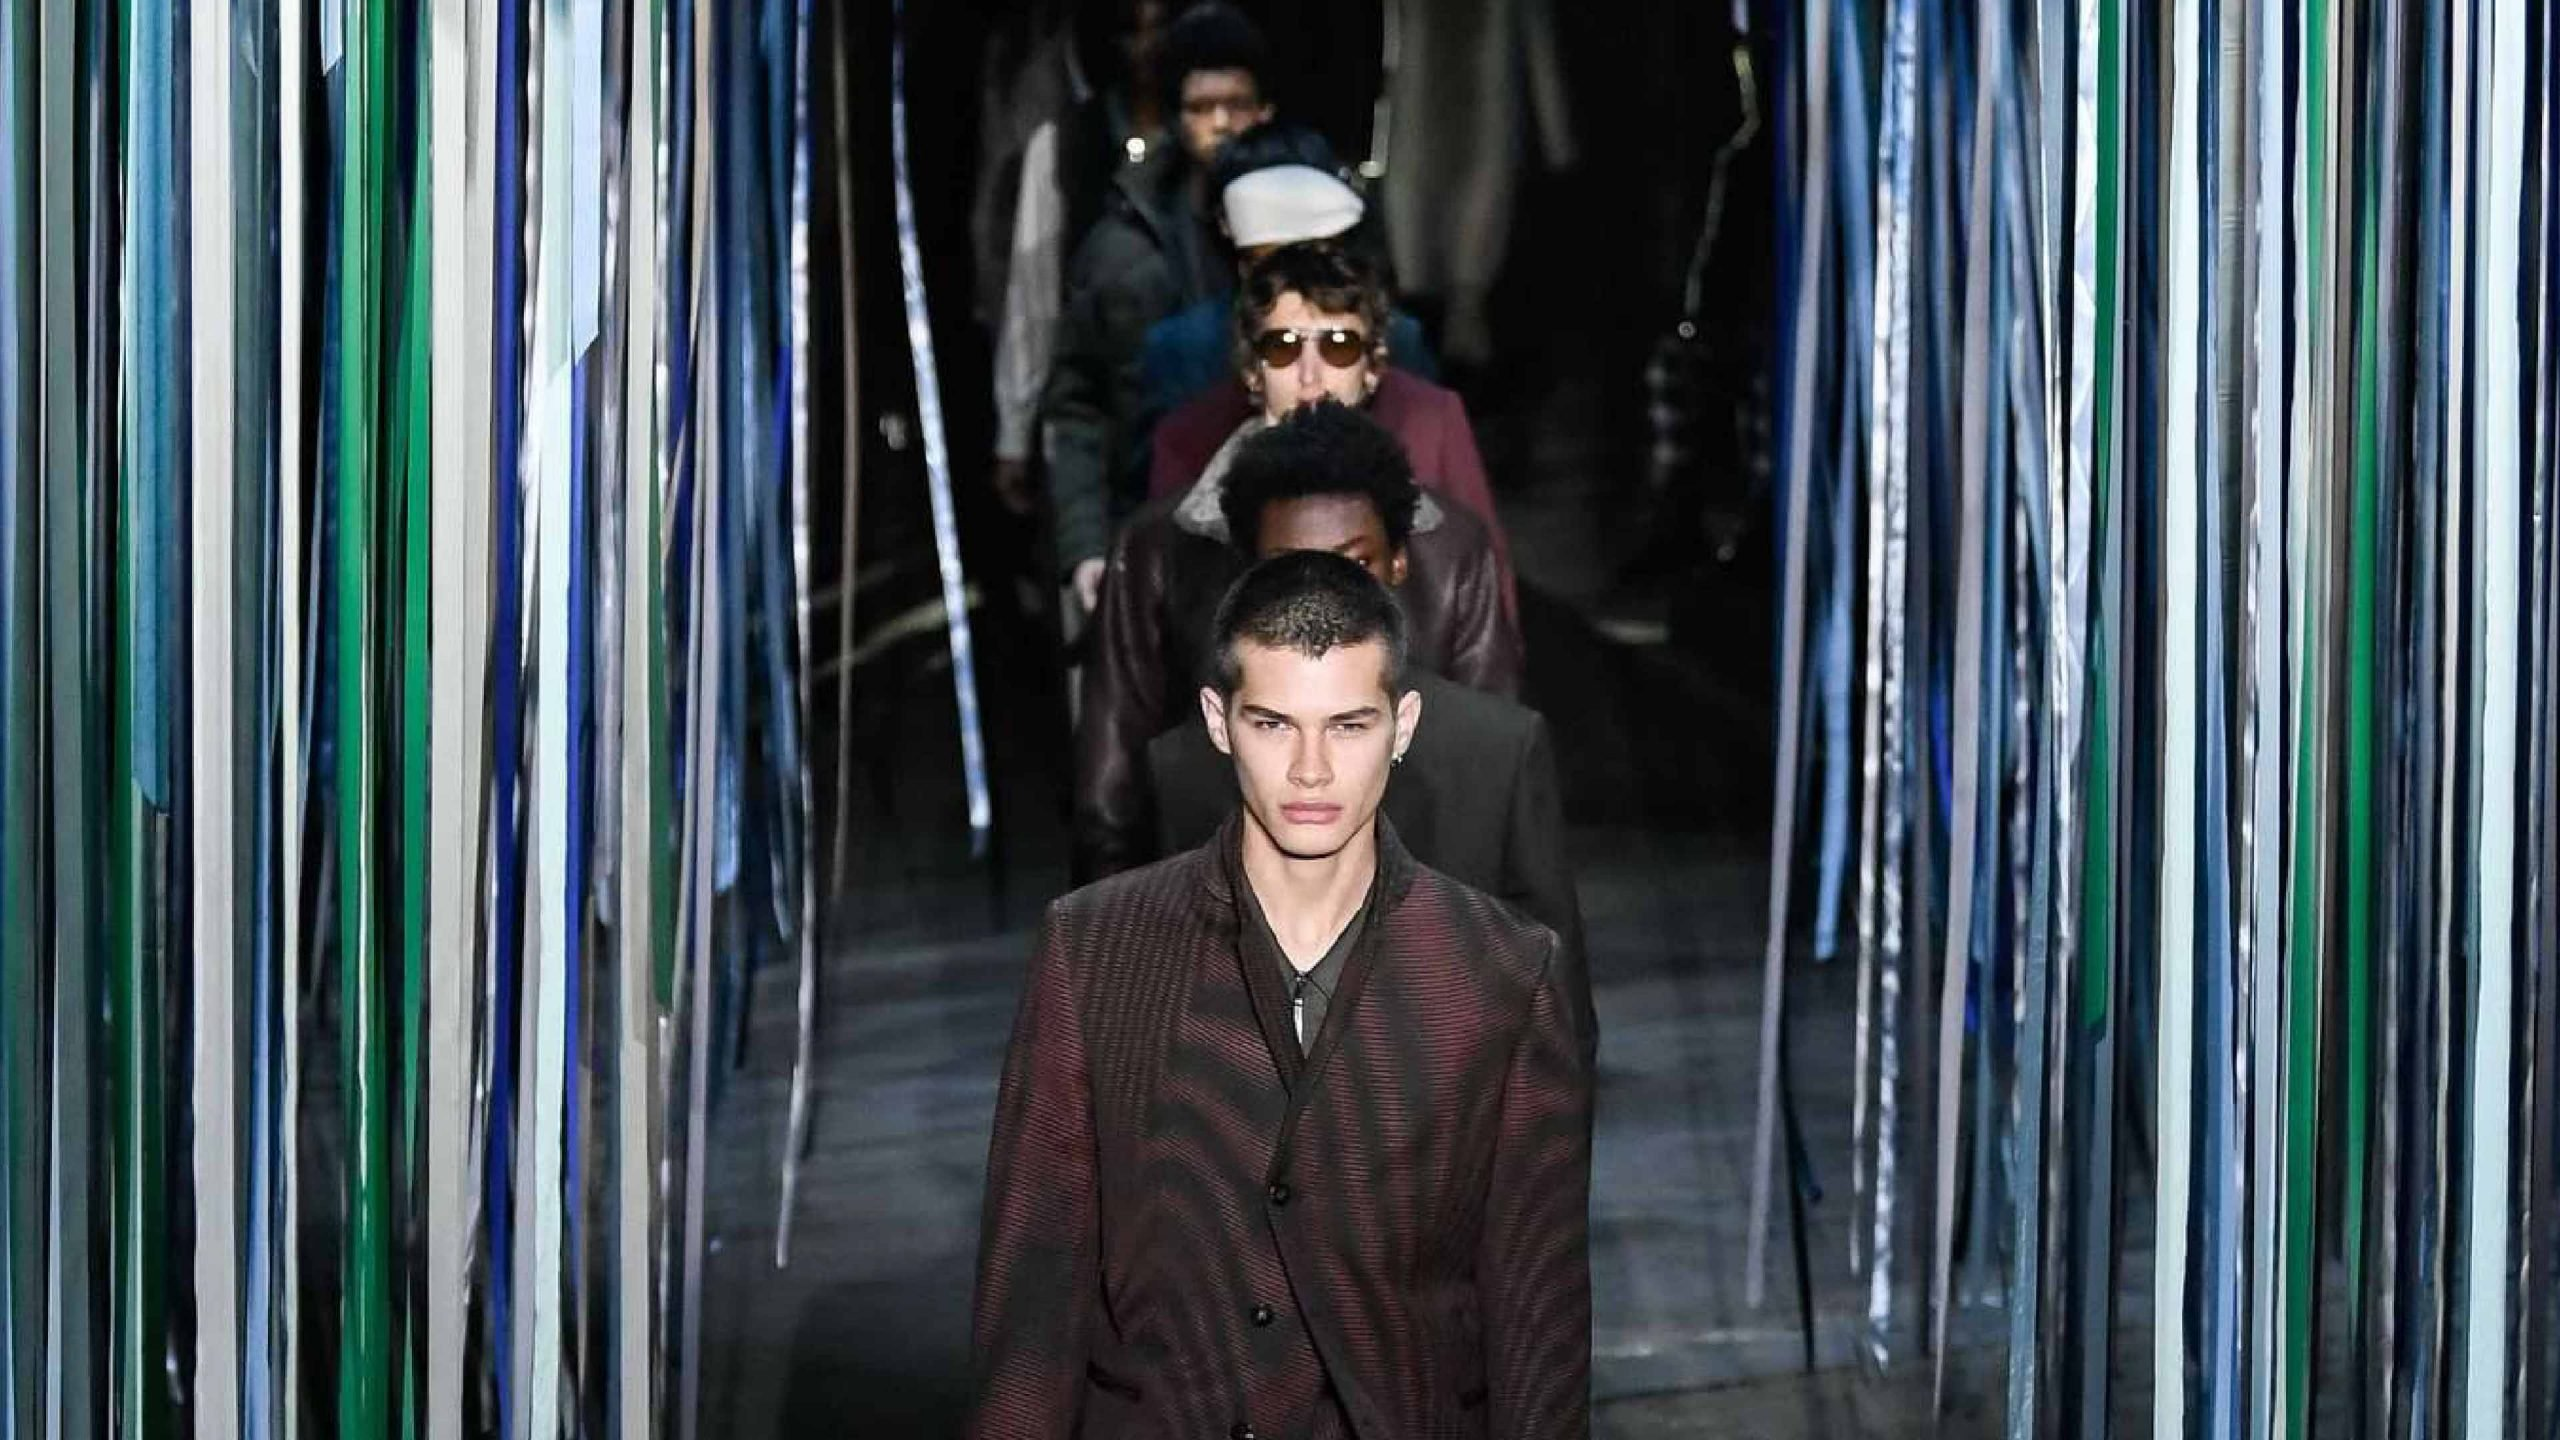 ZEGNA-FW20-photo-23